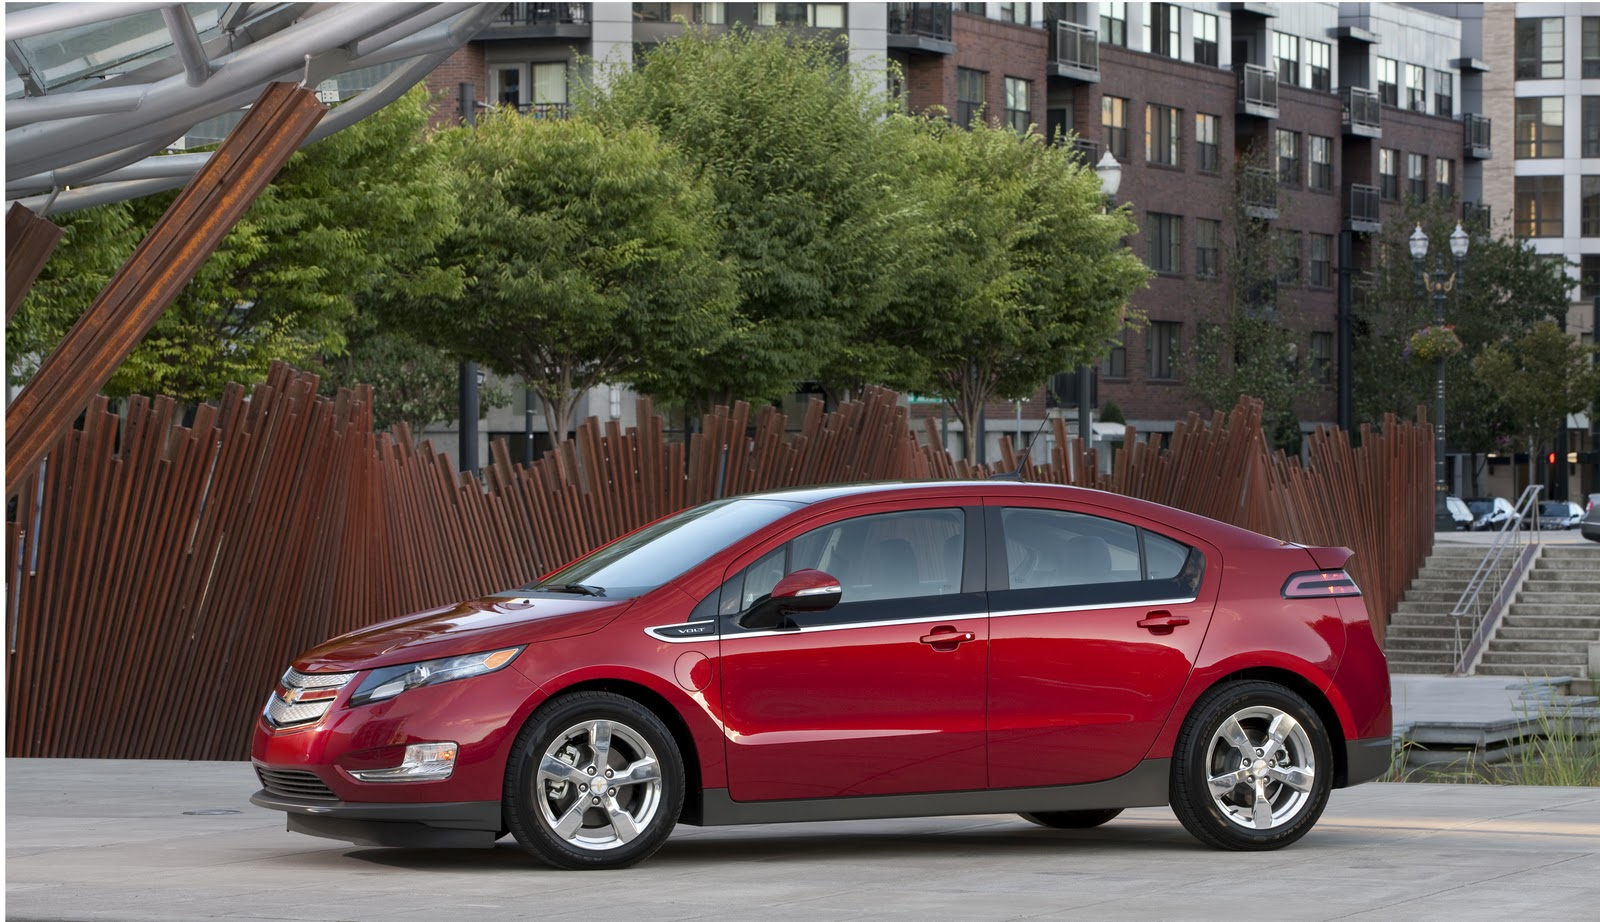 General motors officially launch the 2011 chevrolet volt electric vehicle news